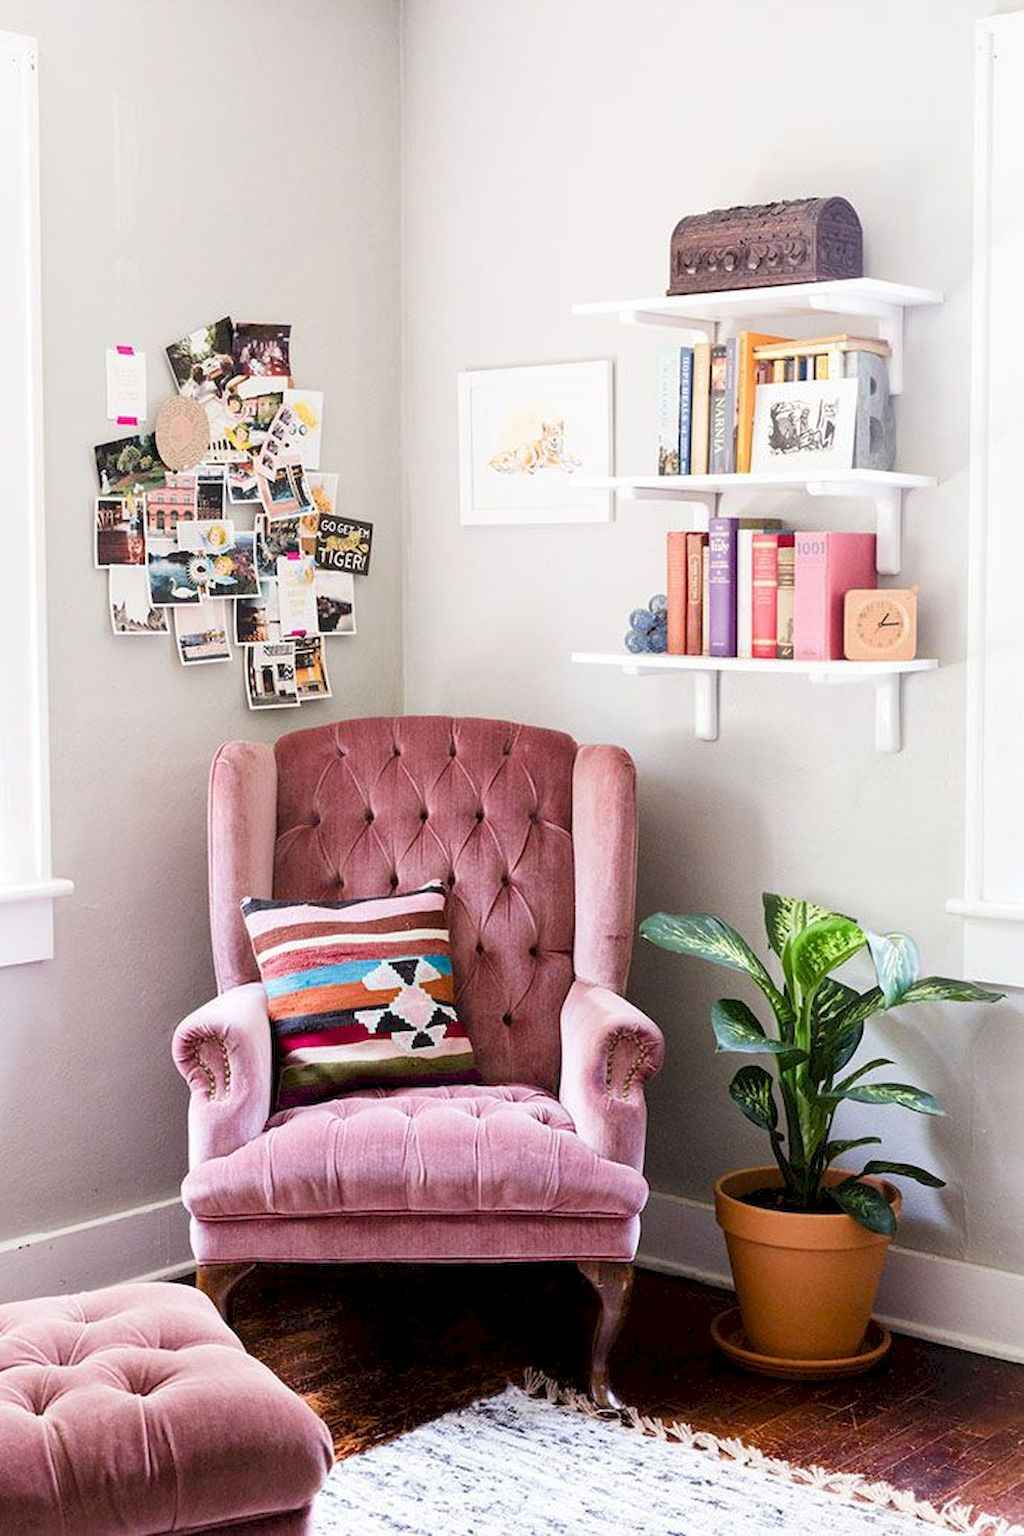 Cozy apartment decorating ideas on a budget (13)